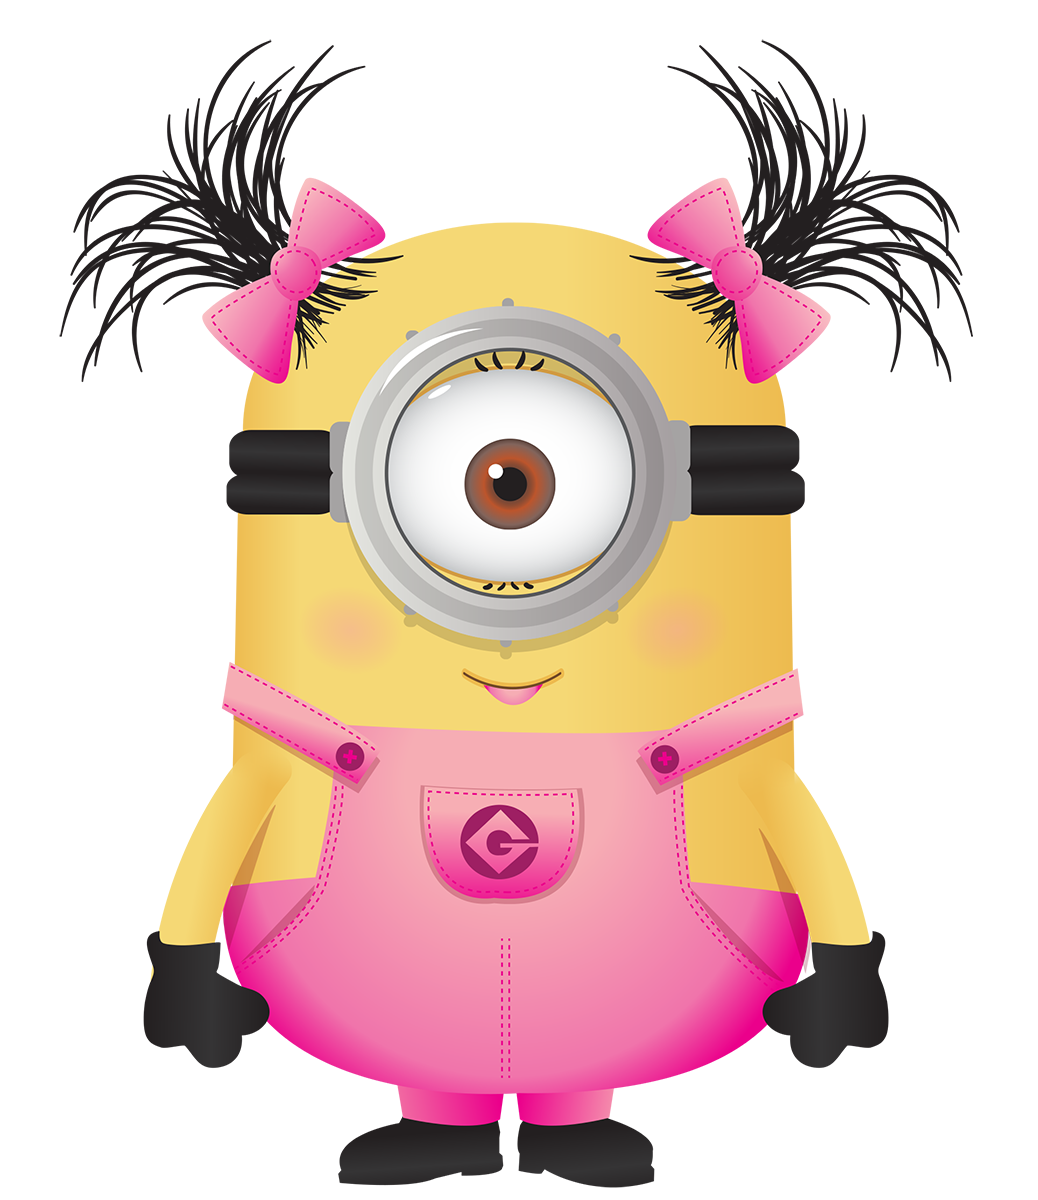 Minion Png 42188 Free Icons And Png Backgrounds